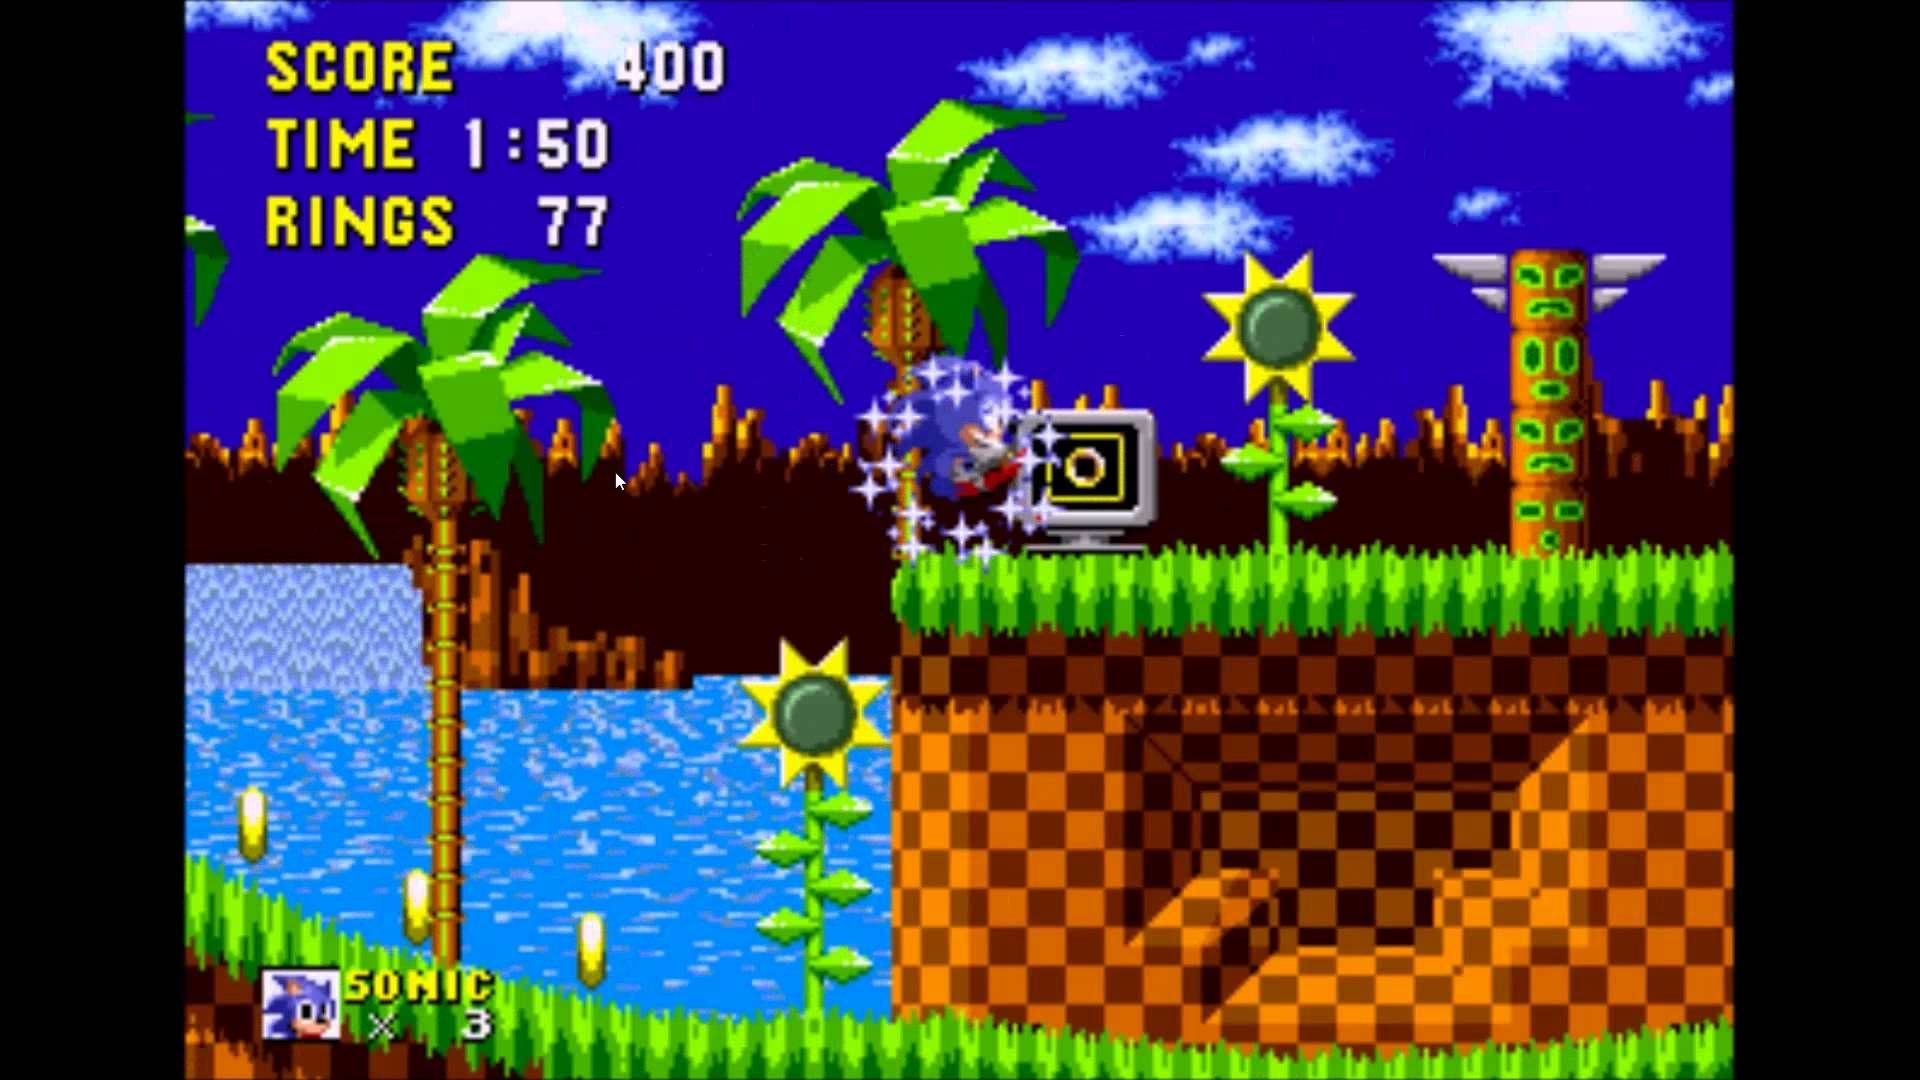 Sega Genesis Sonic The Hedgehog Gameplay 1 Sega Genesis Game Themes Sonic The Hedgehog